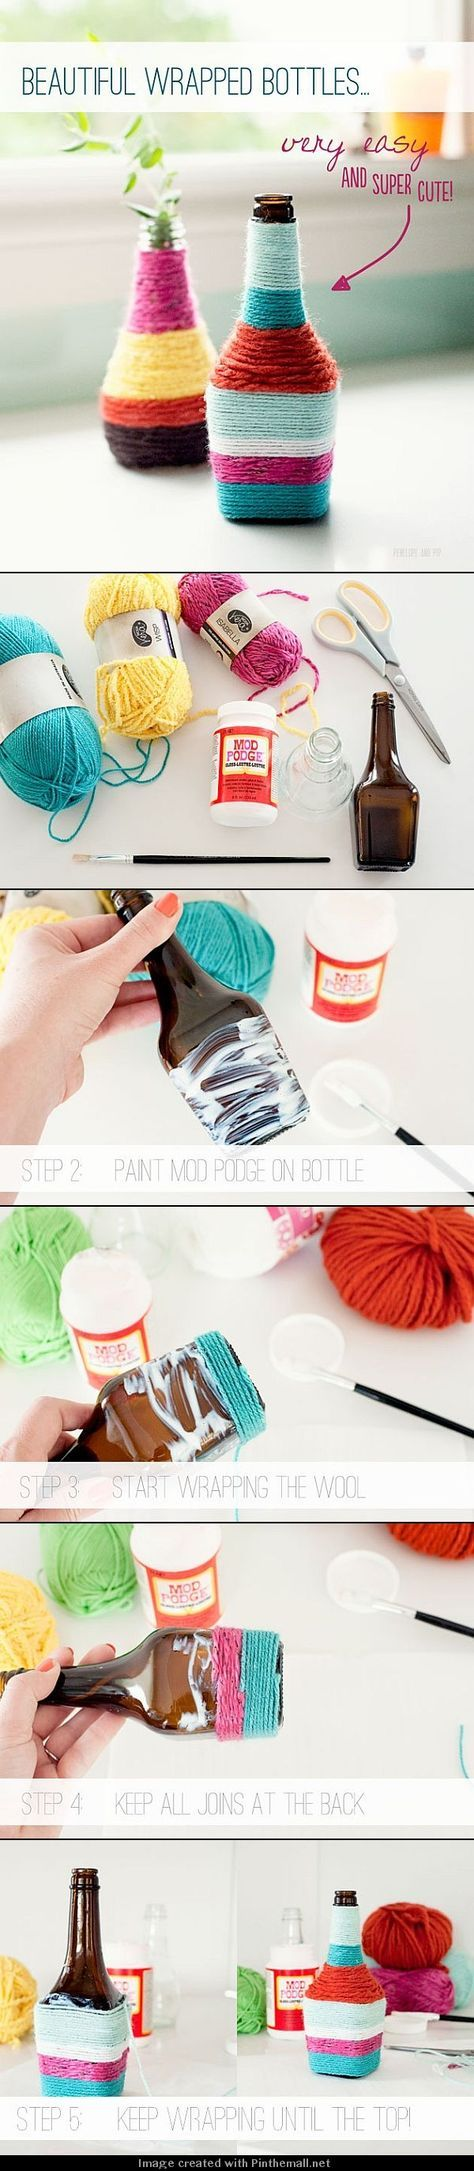 DIY AND CRAFT MIRACLES : Beautiful Wrapped Bottles DIY